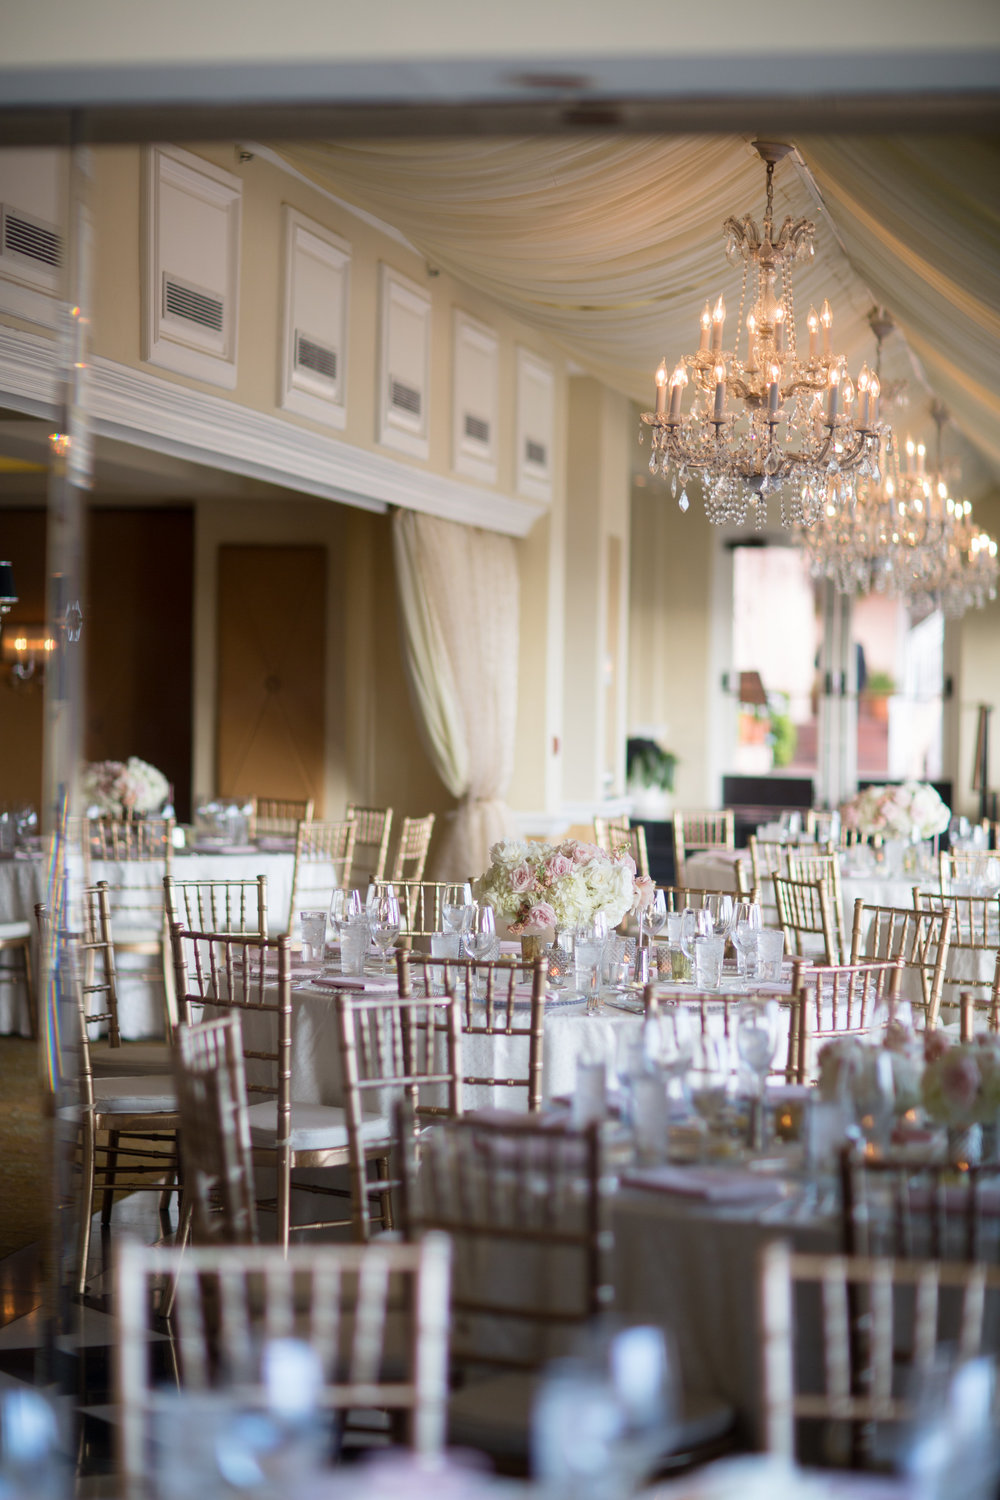 The existing chandeliers are a beautiful touch to the ballroom.